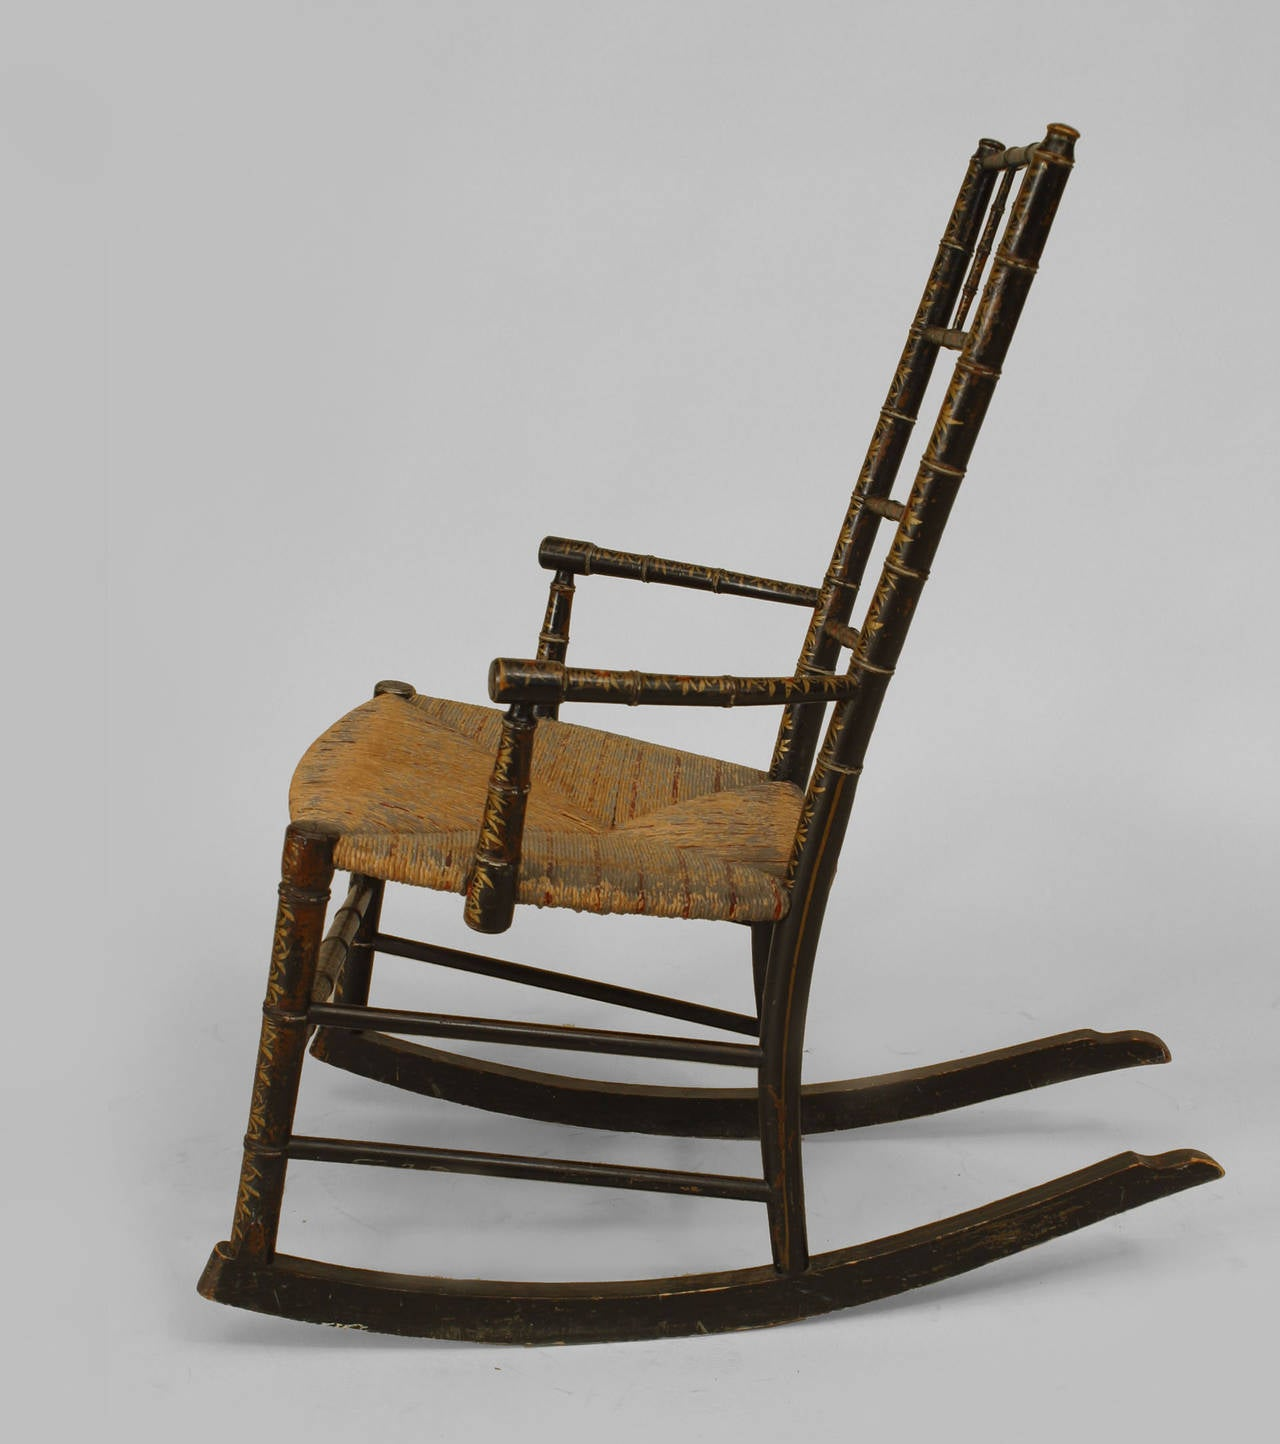 19th Century American Country Style Childu0027s Rocking Chair With An Ebonized  Faux Bamboo Design And Decorated